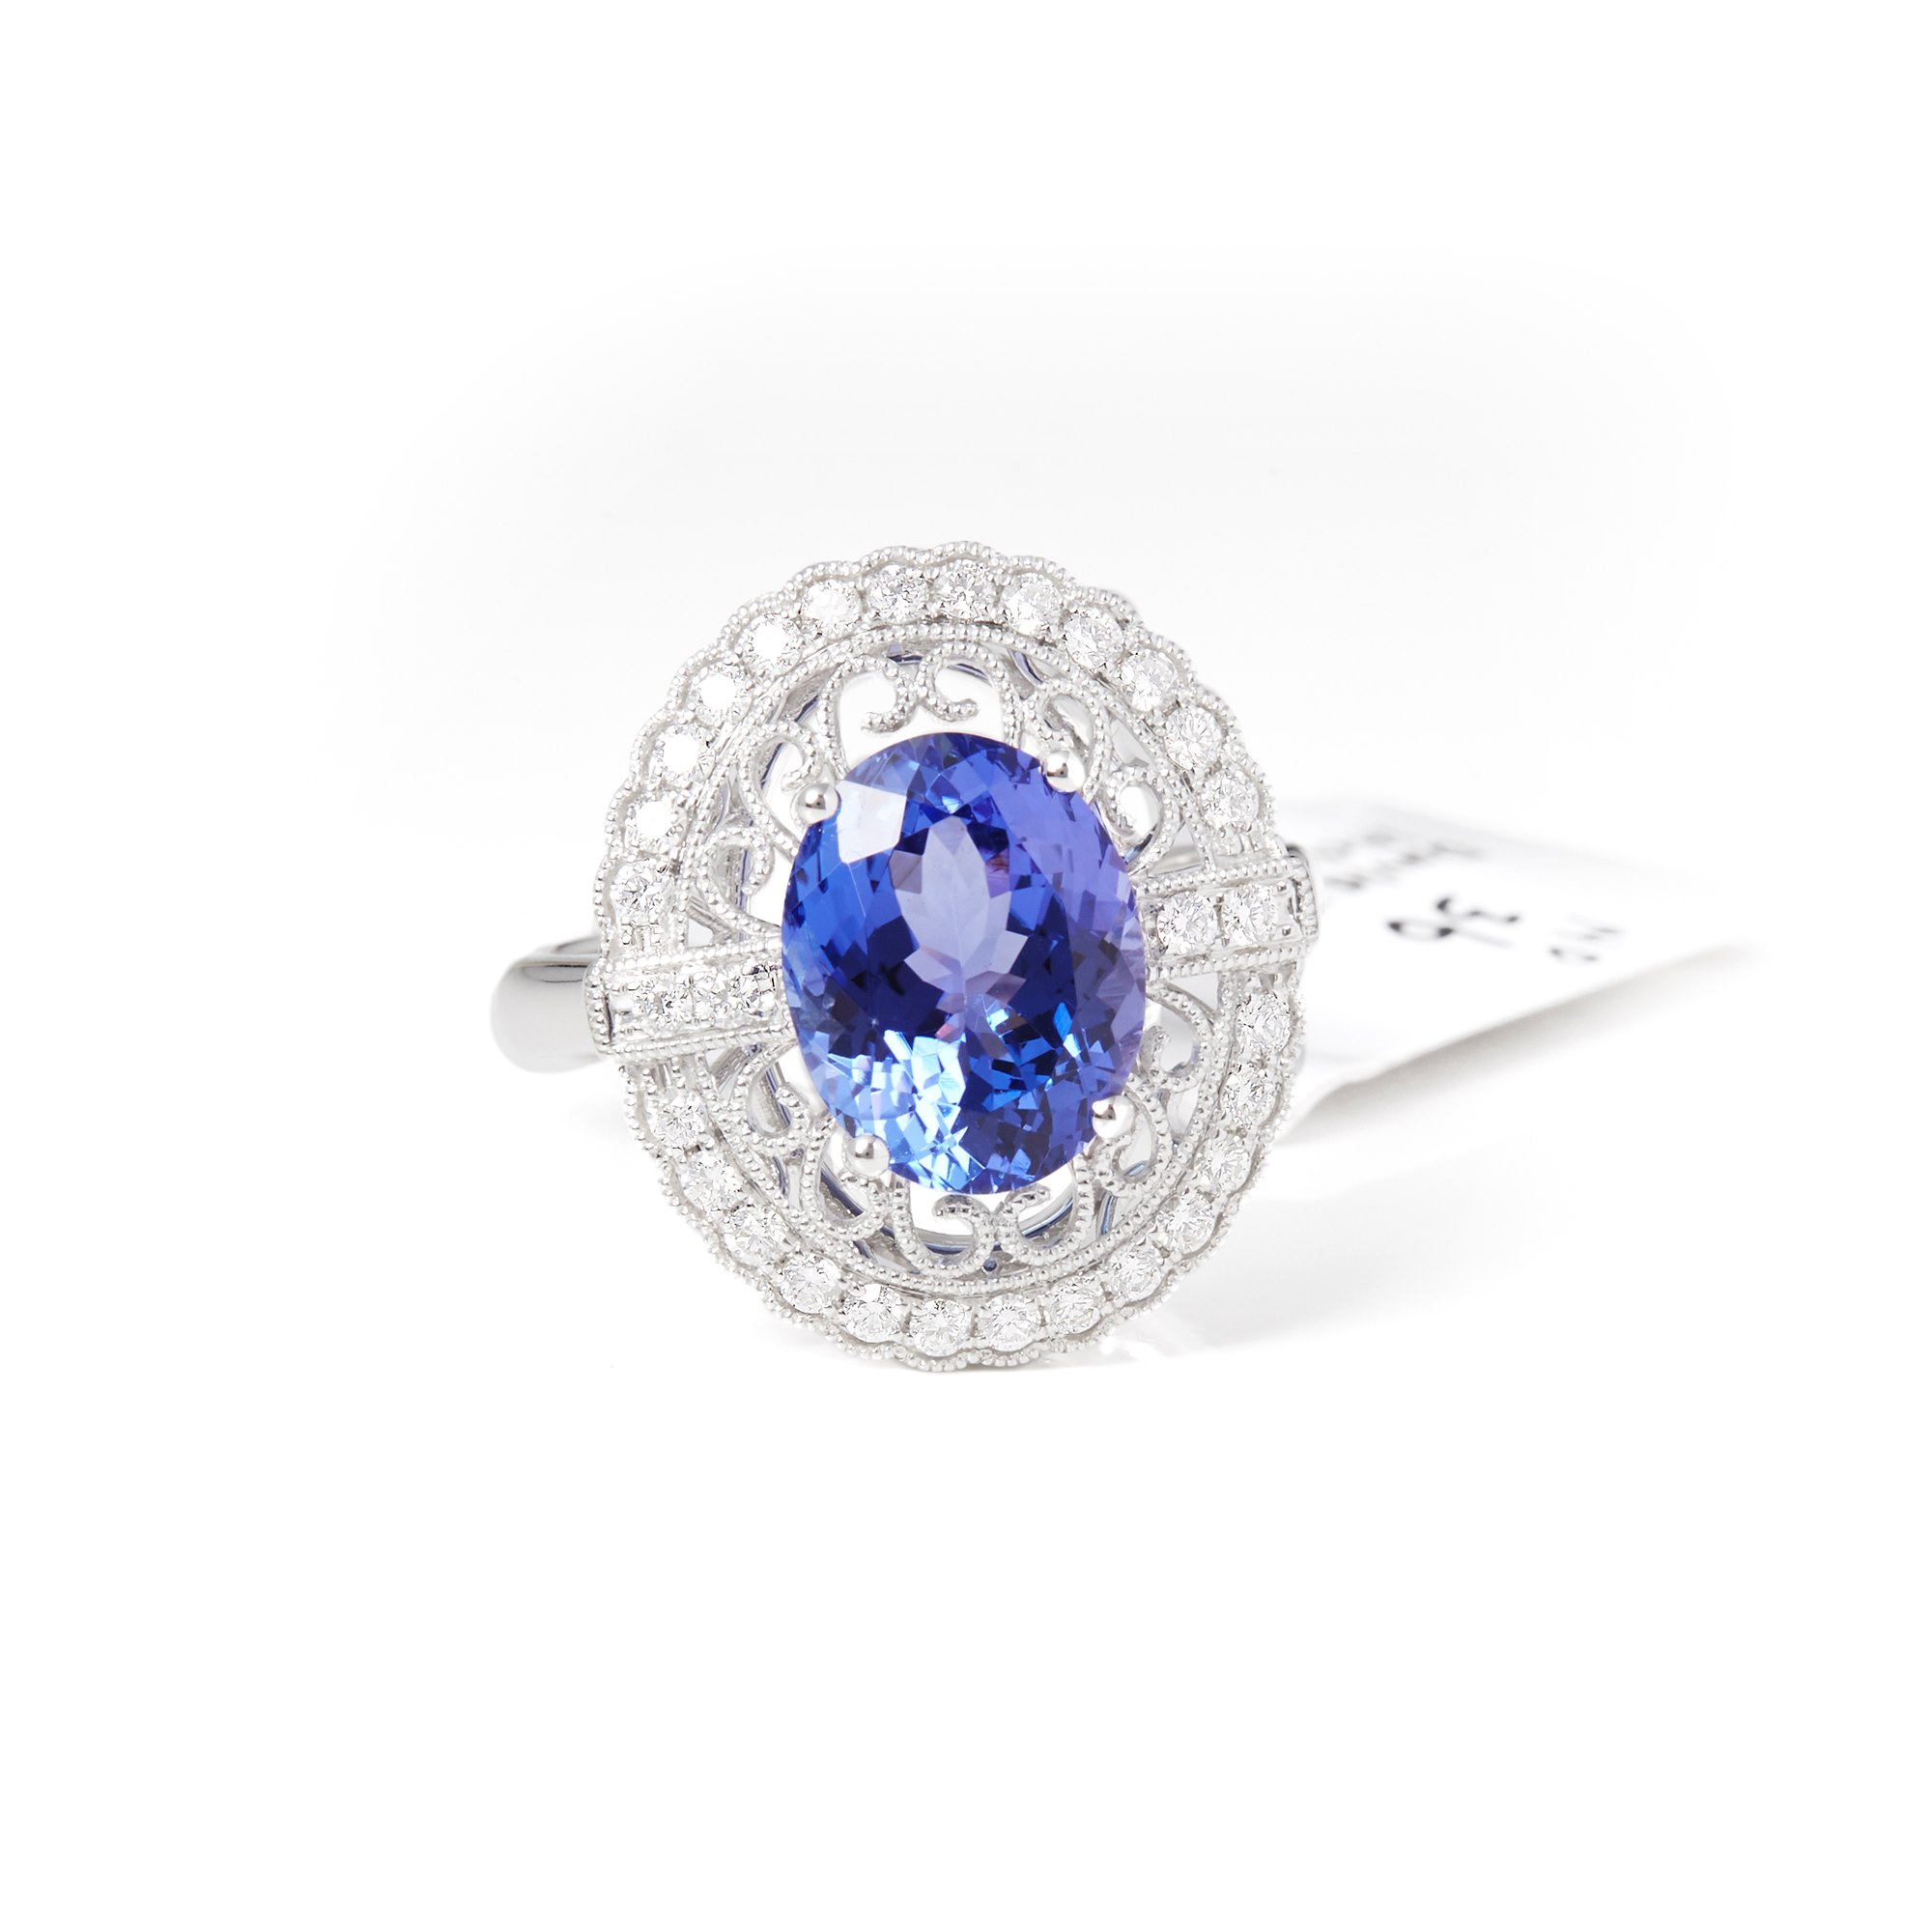 David Jerome 18k White Gold Tanzanite and Diamond Ring